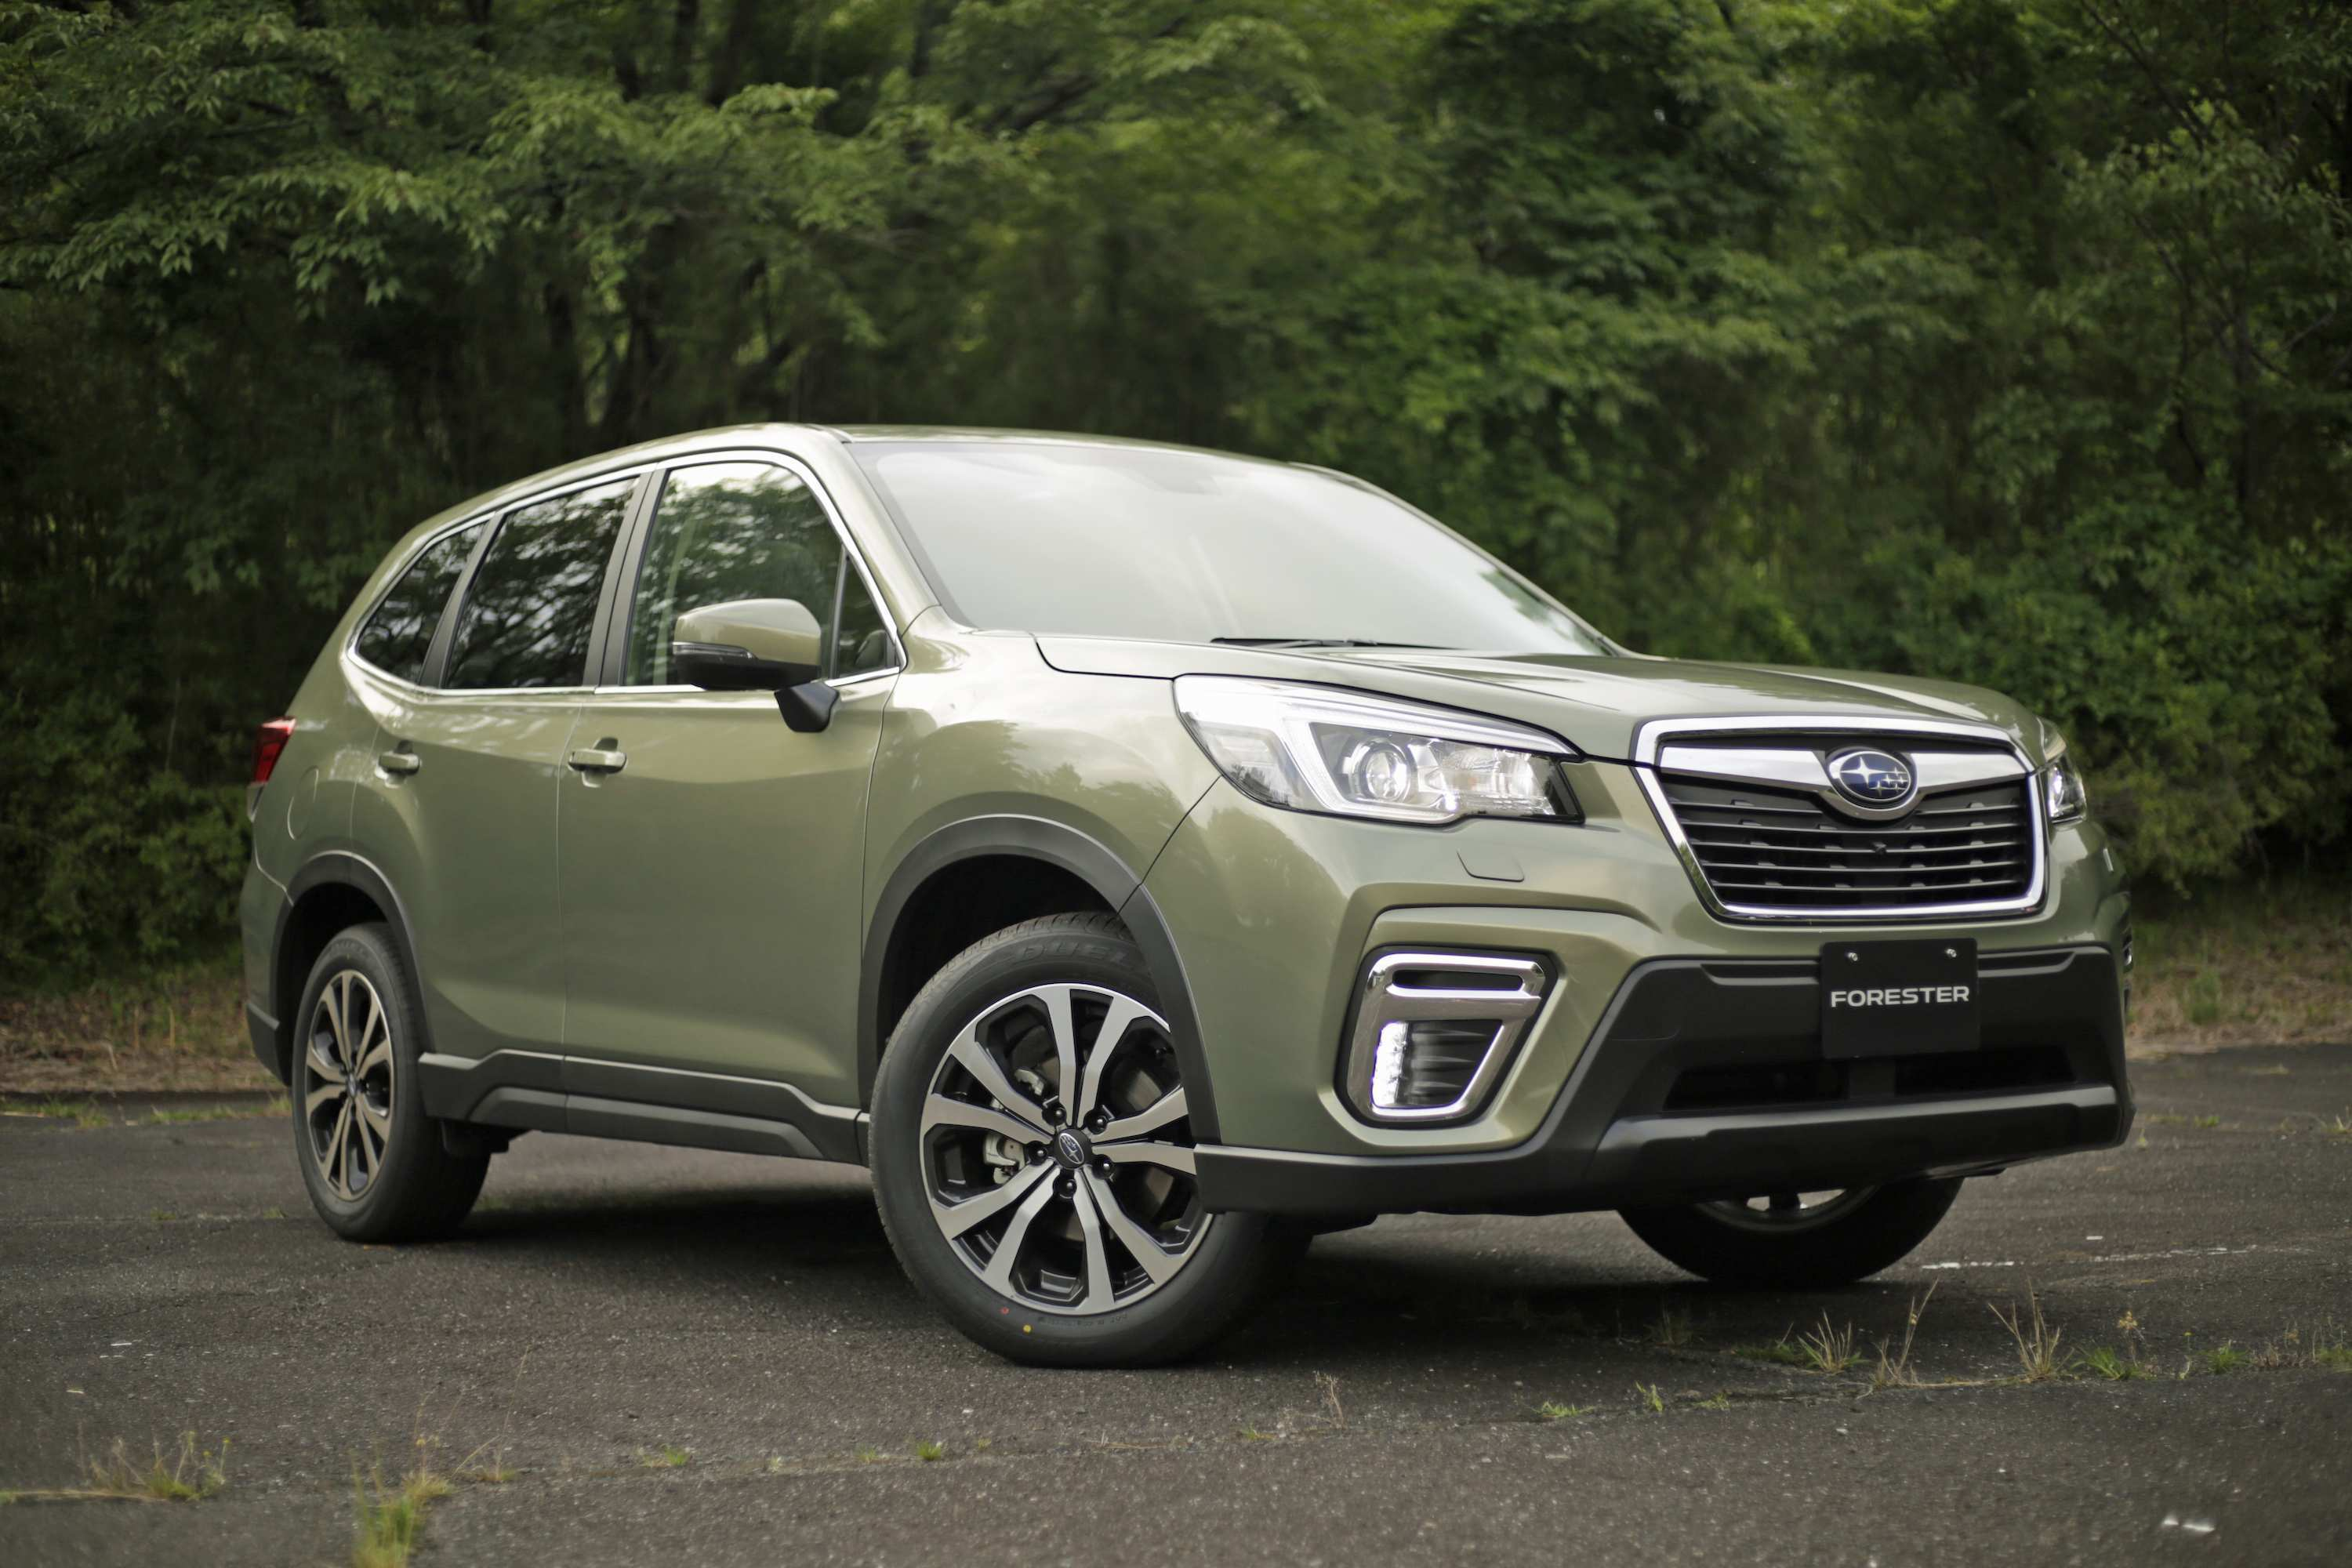 16 New The 2019 Subaru Forester Overview for The 2019 Subaru Forester